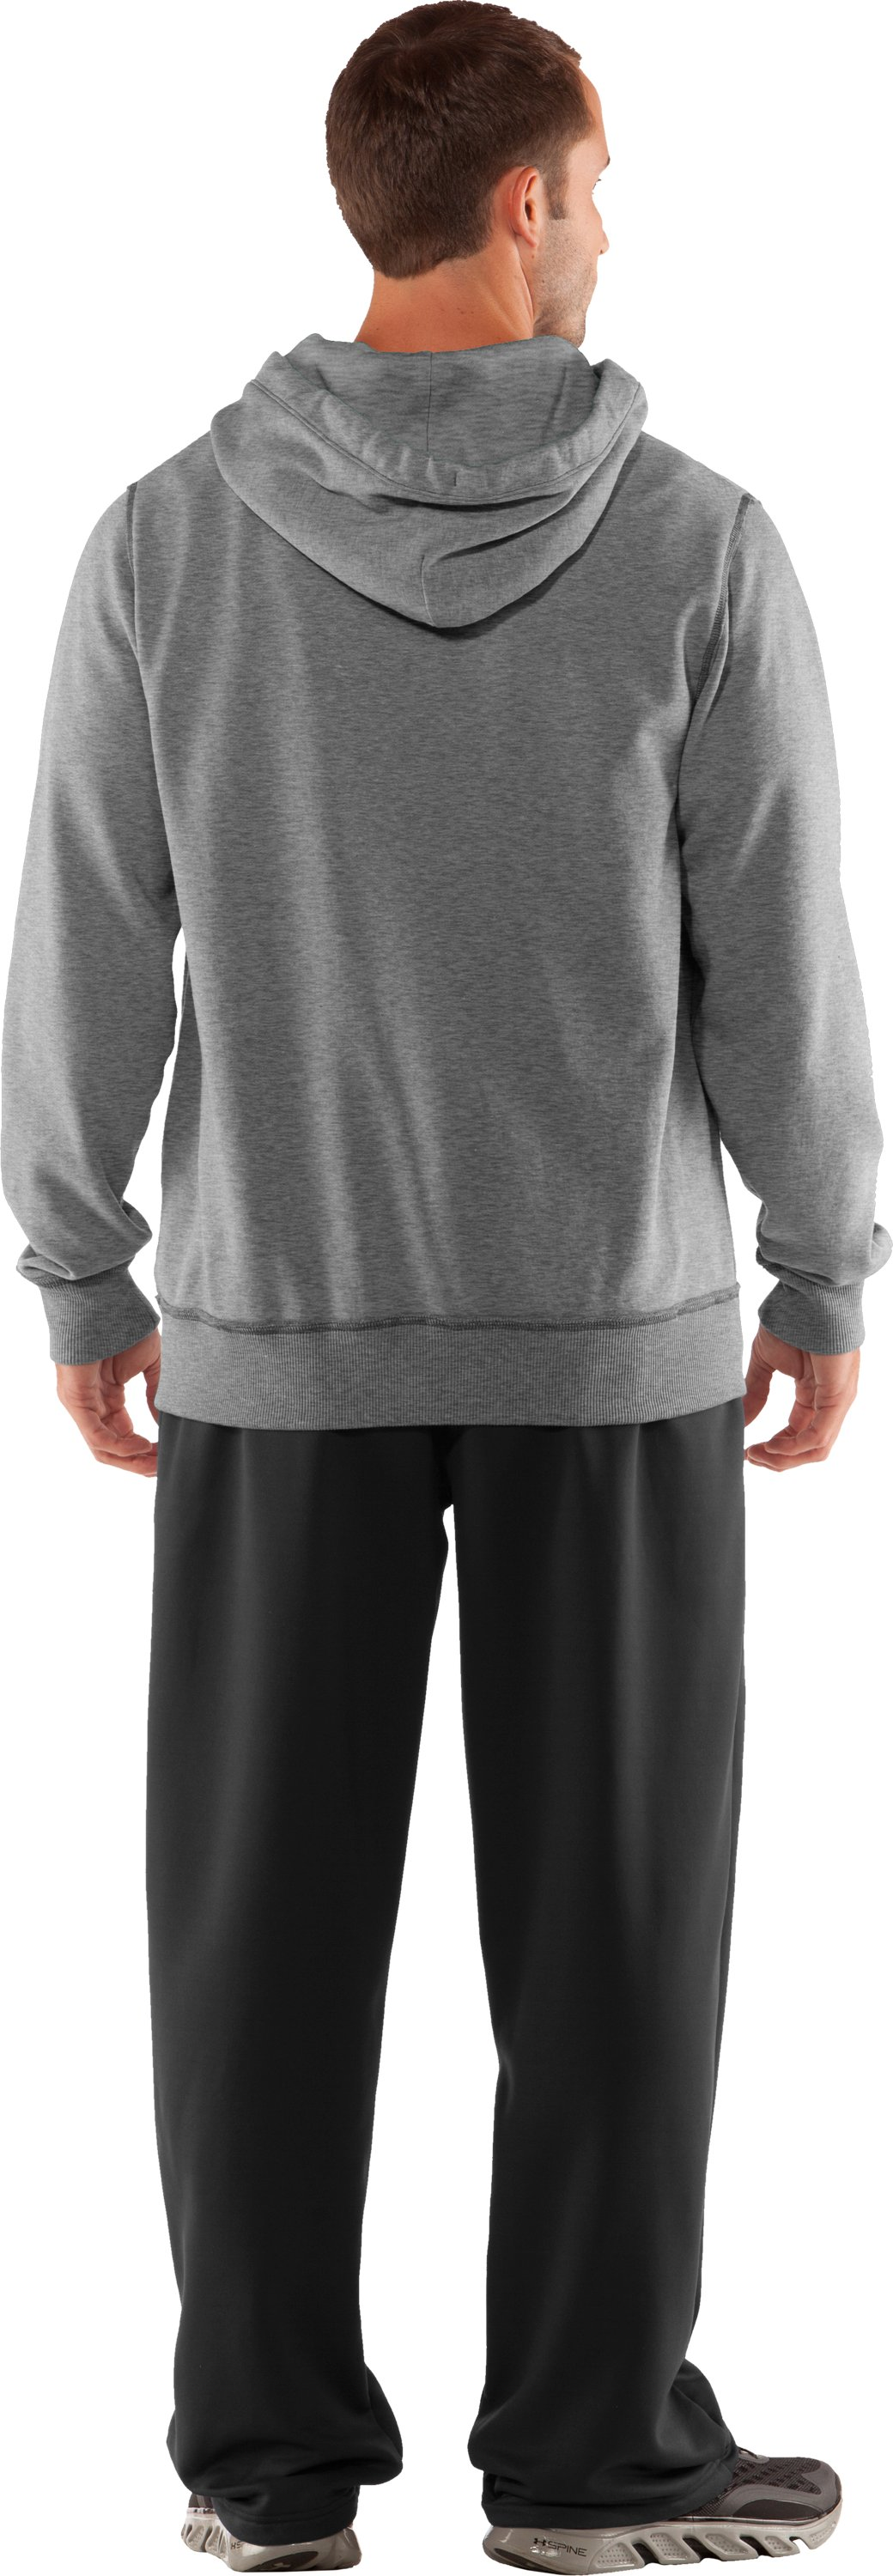 Men's Hawai'i Under Armour® Legacy Hoodie, True Gray Heather, Back